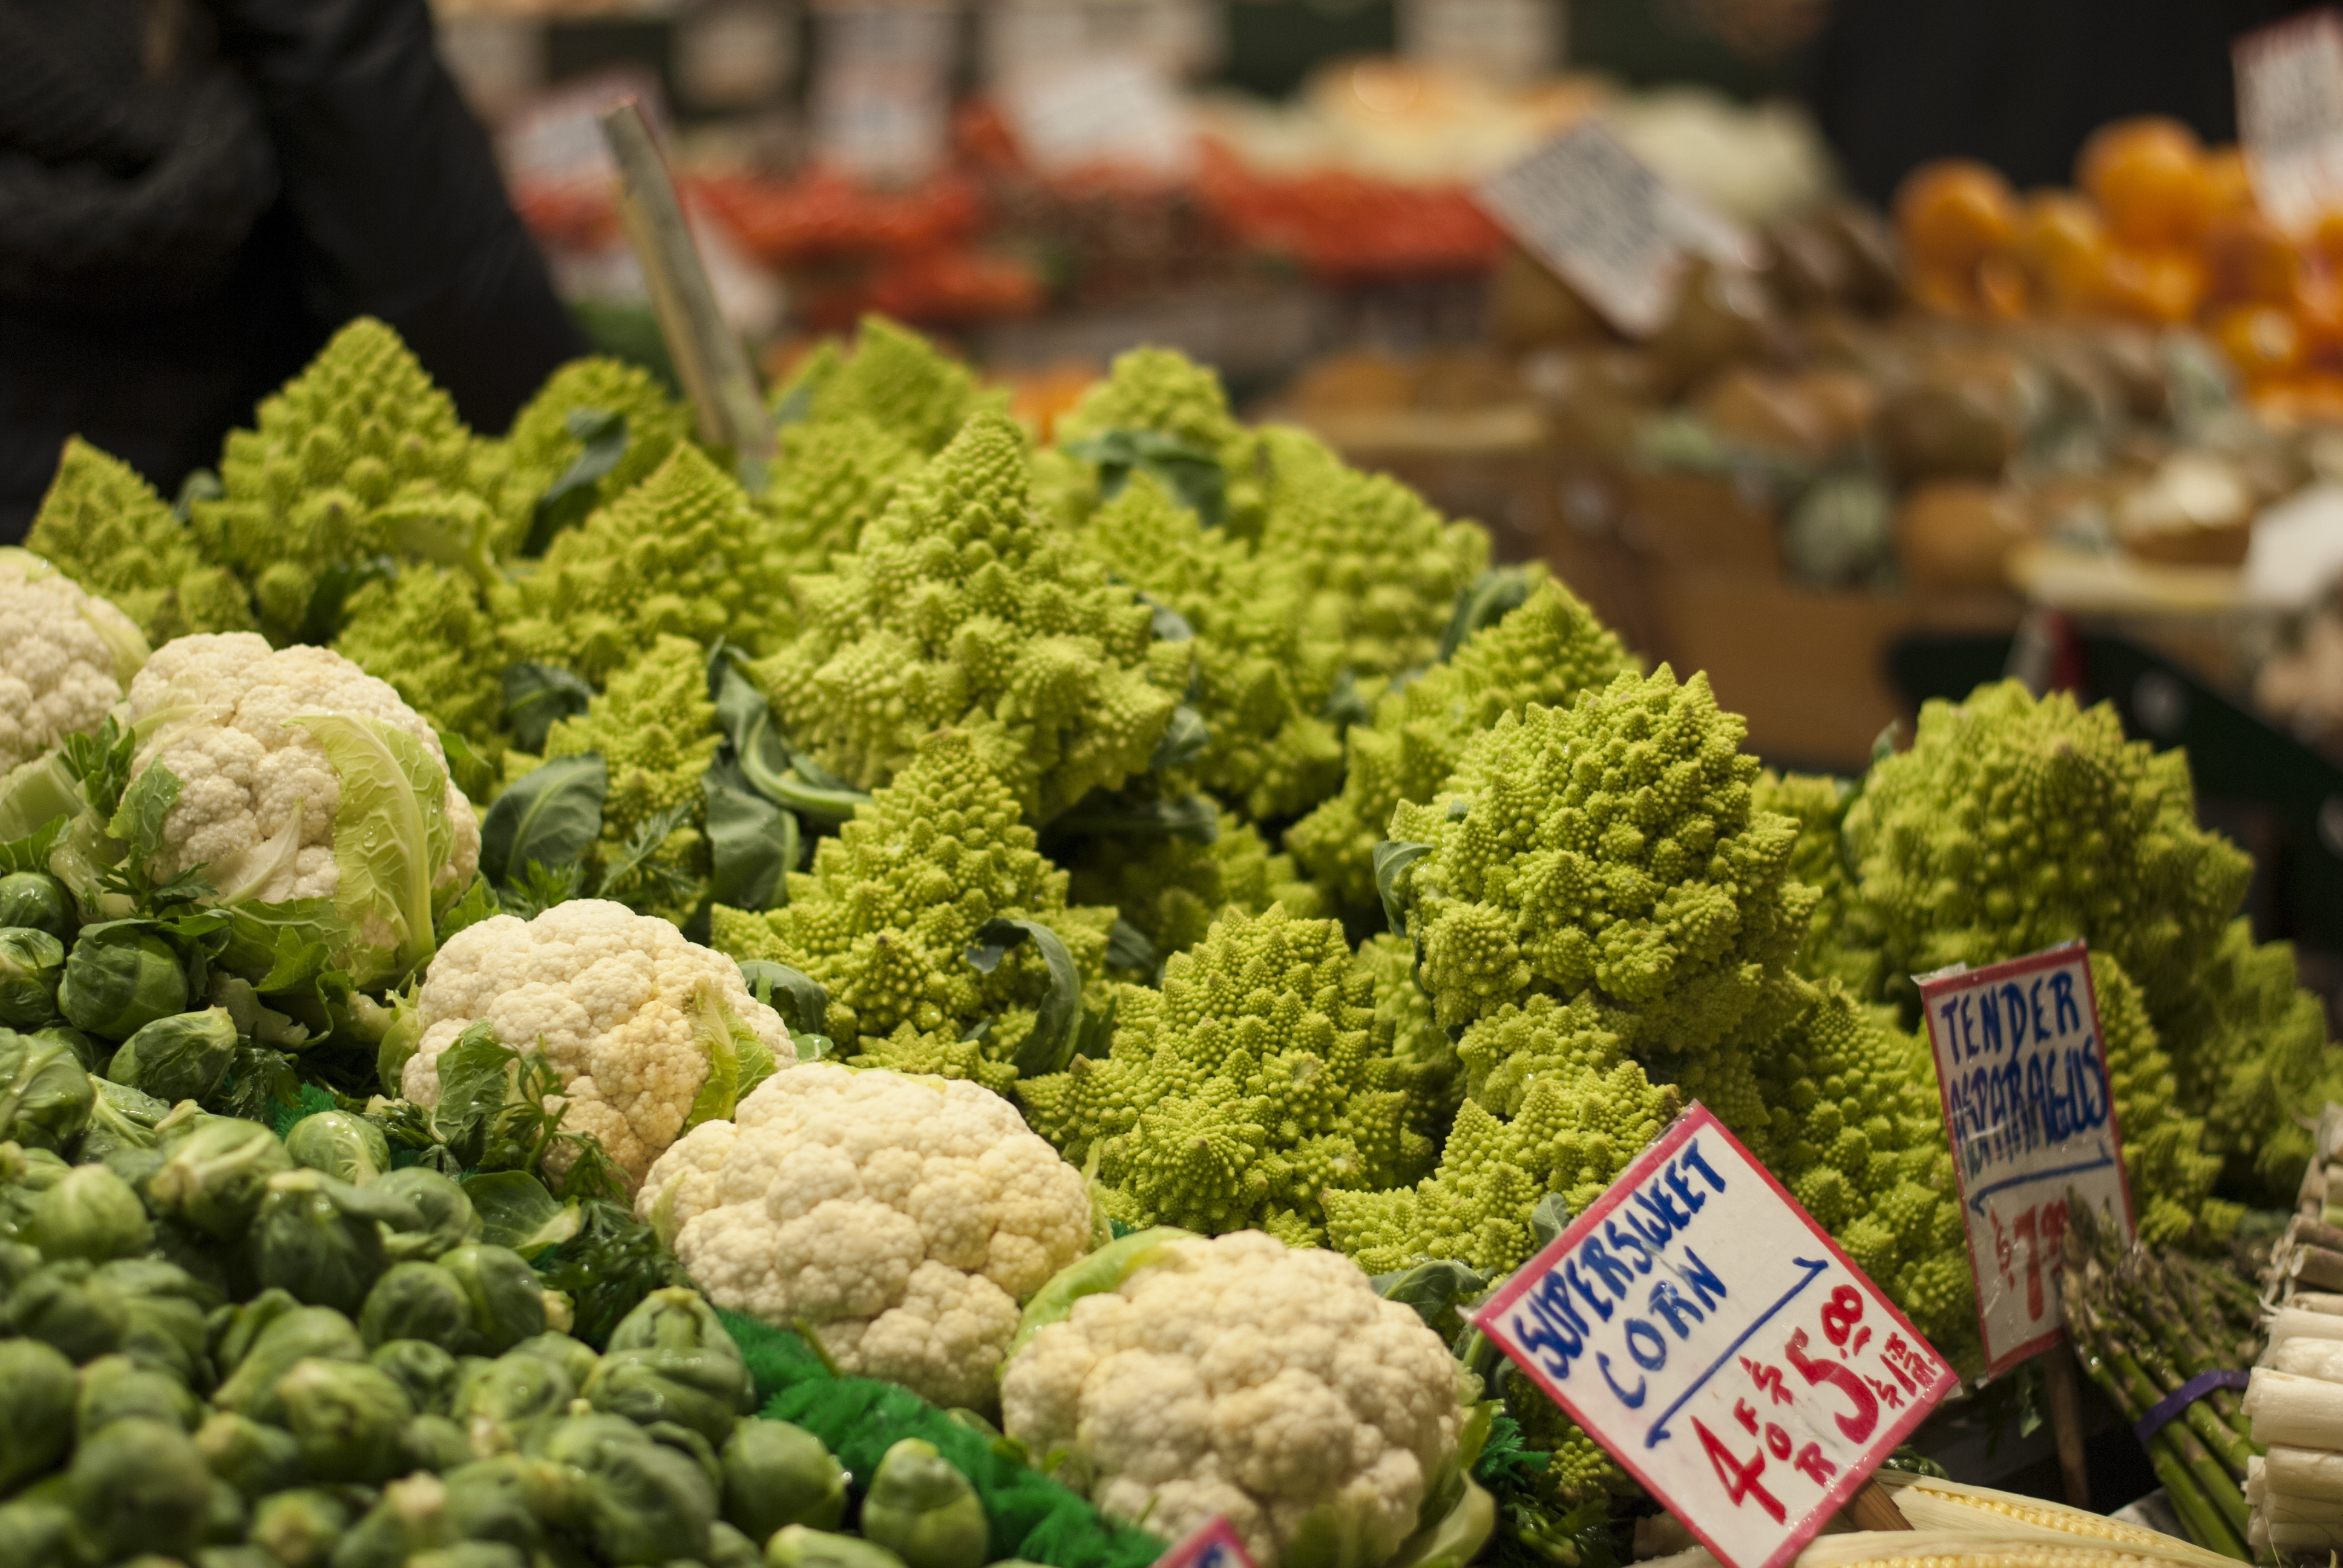 Left to right, Brussels sprouts, cauliflower, and romanesco sit in a market display stand. There are more stands in the background, which are out of focus.